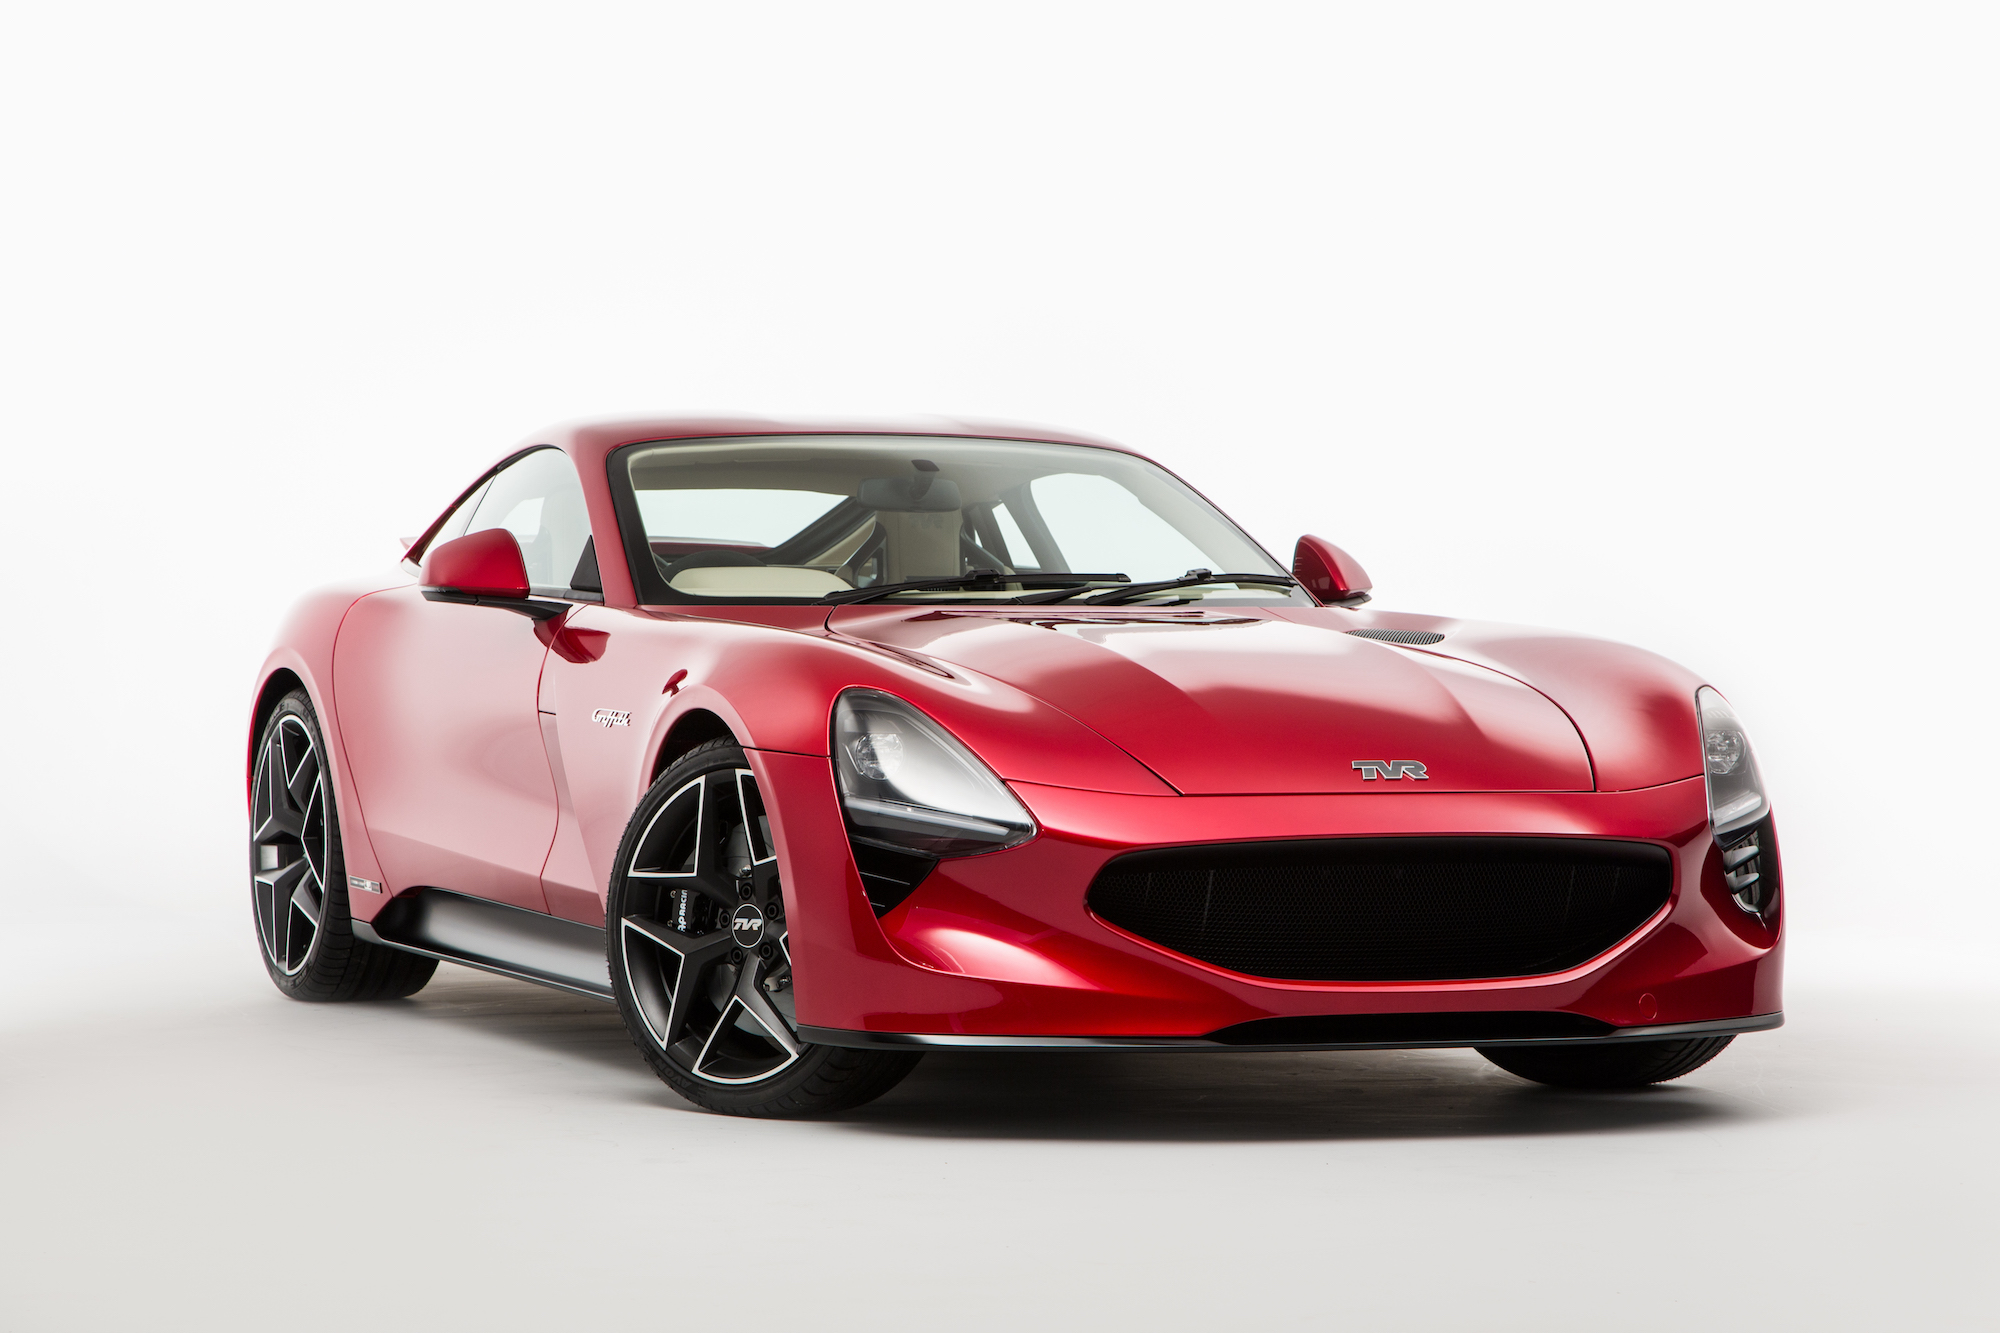 TVR Chairman, Les Edgar, on Creating the Everyday TVR